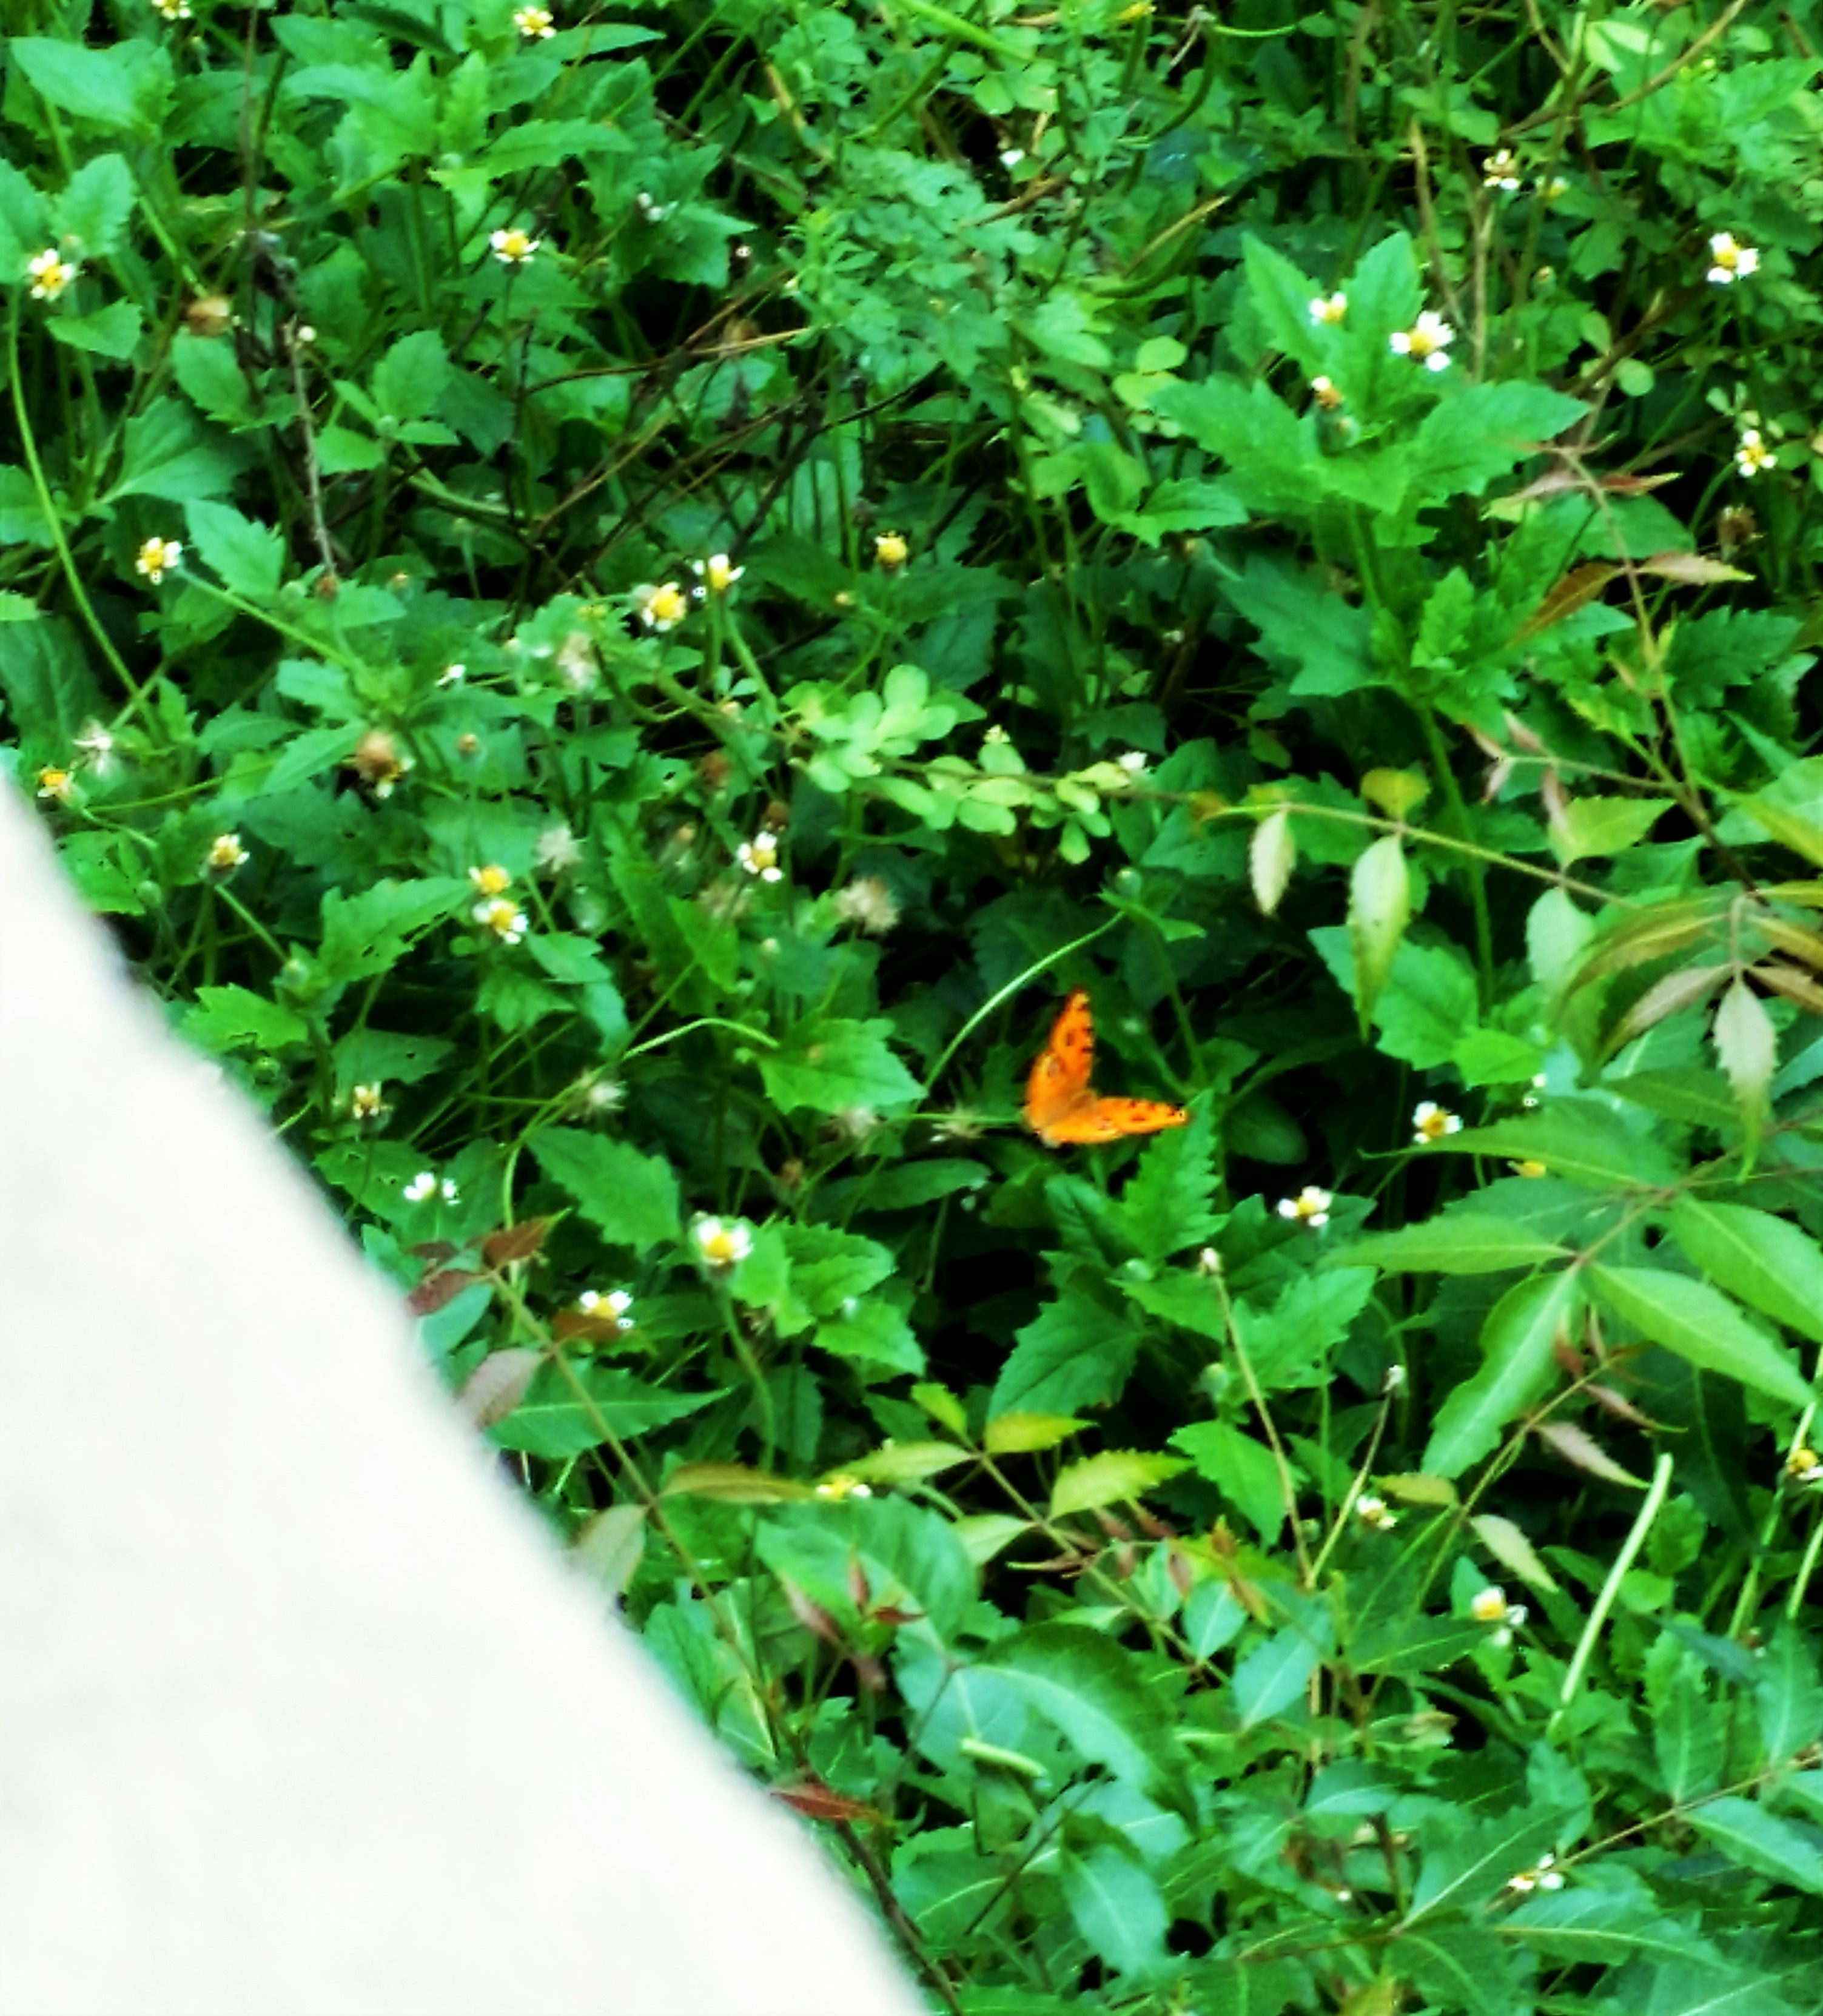 Can u find butterfly in this pic?..not so clear :(